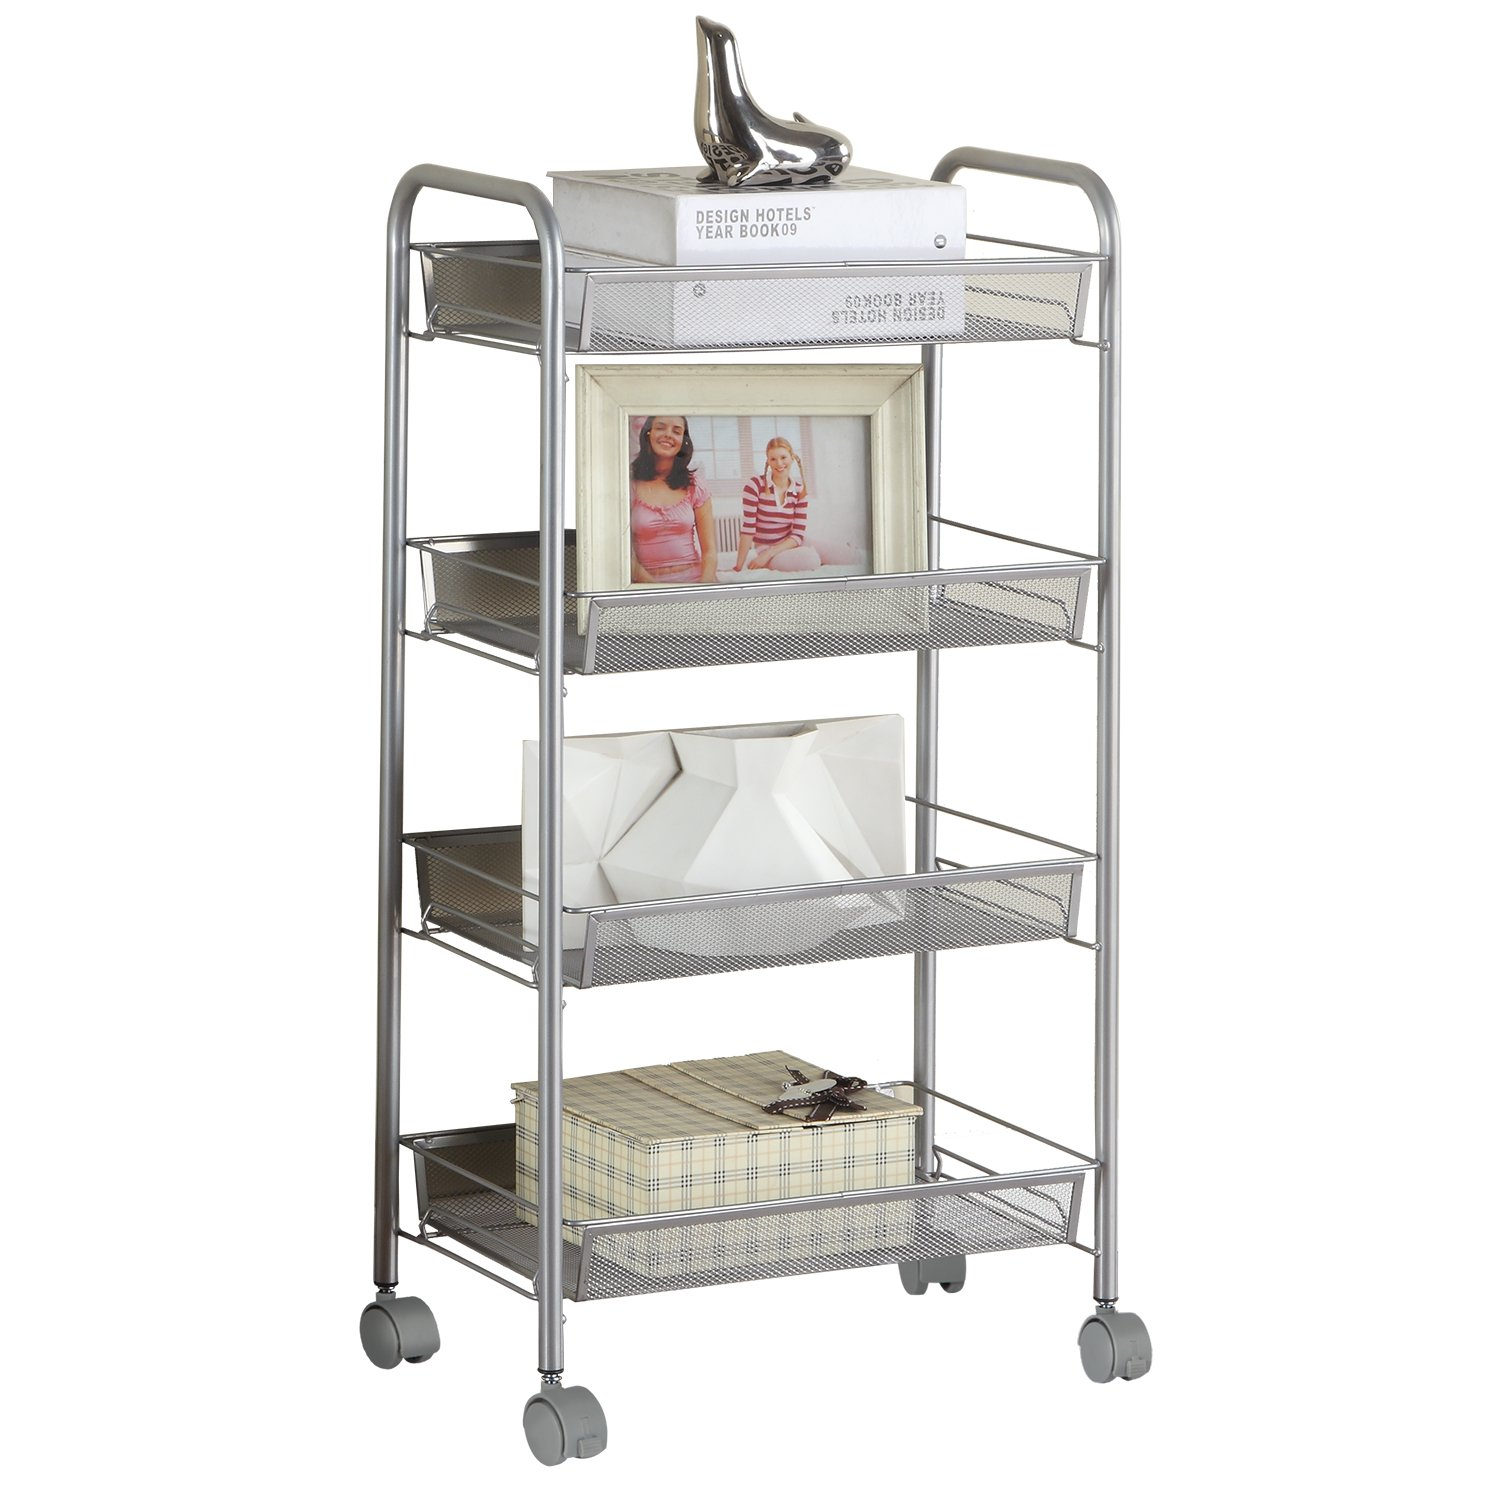 SINGAYE Silver Kitchen Storage Cart on Wheels 4 Tier Multifunction Utility Cart Steel Wire Basket Shelving Trolley